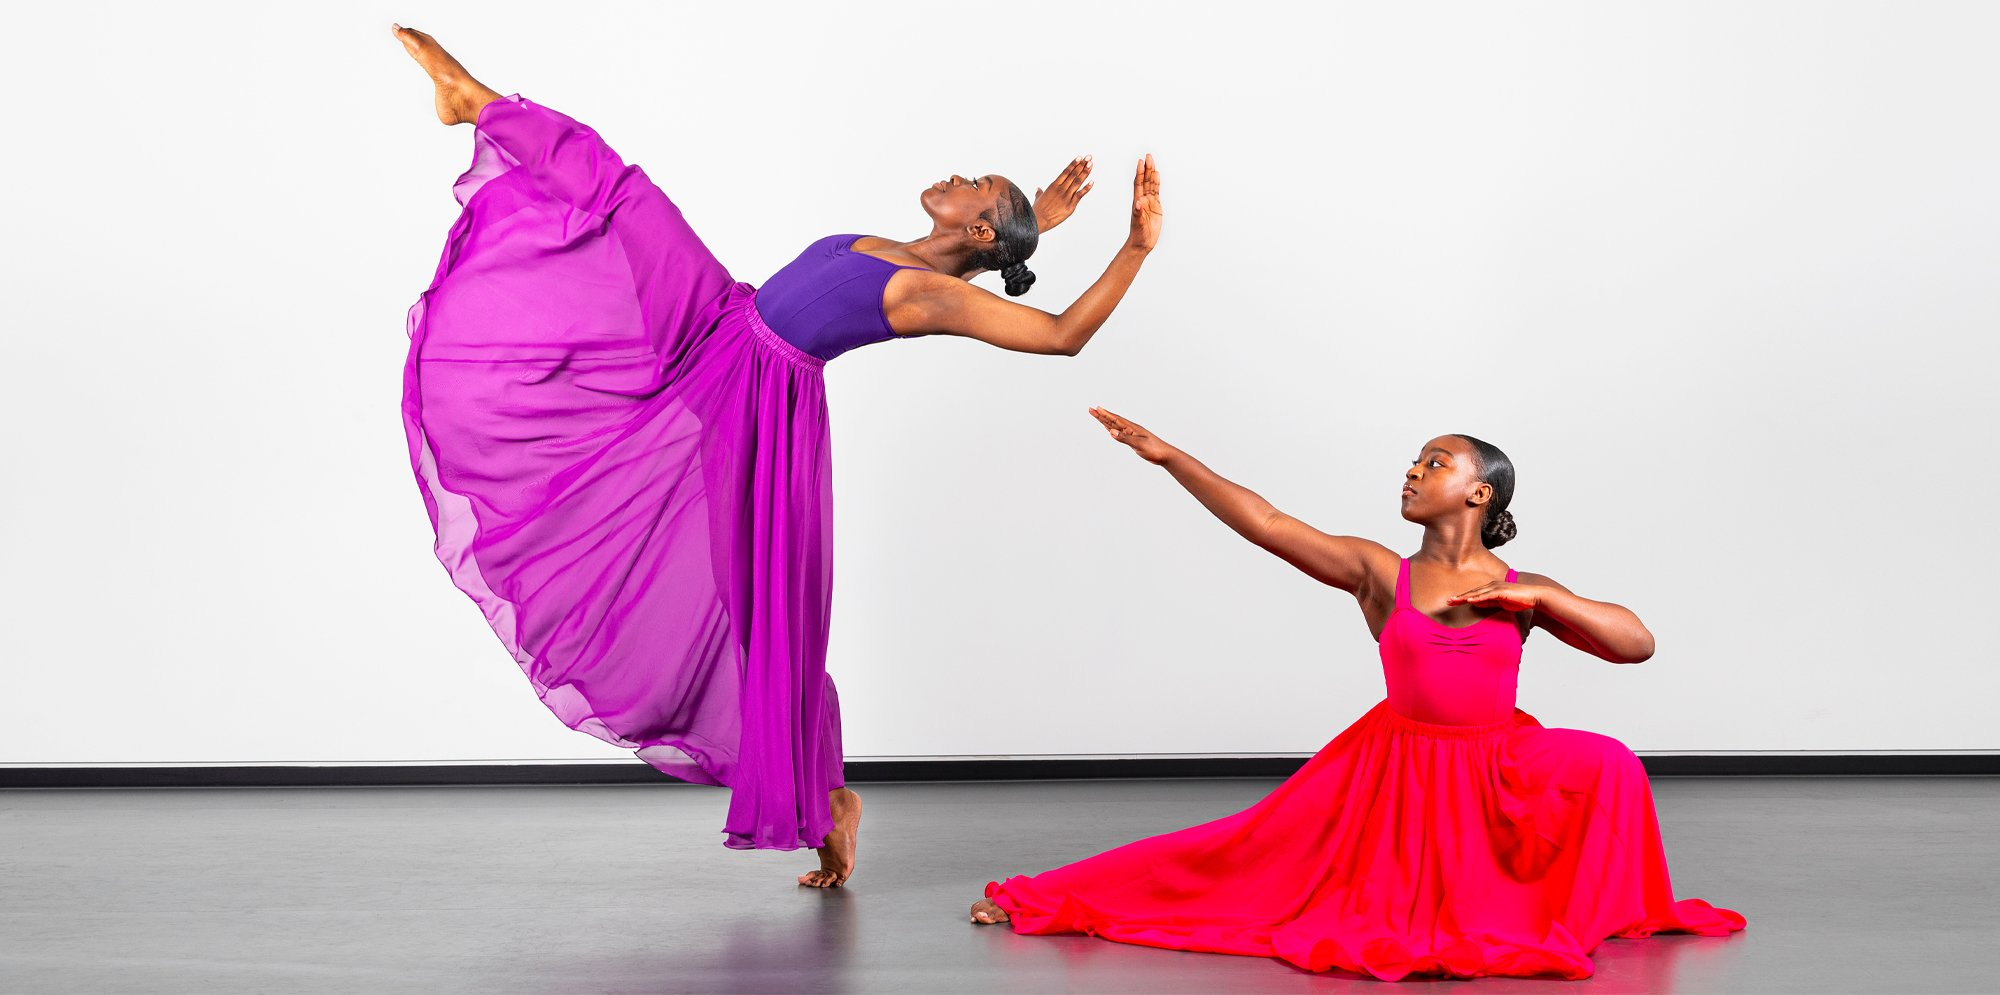 An image of two dancers, one in a purple dress has one leg up and arches her back in a graceful pose, the other in a pink dress sits on the ground and points her arms strikingly towards the other dancer